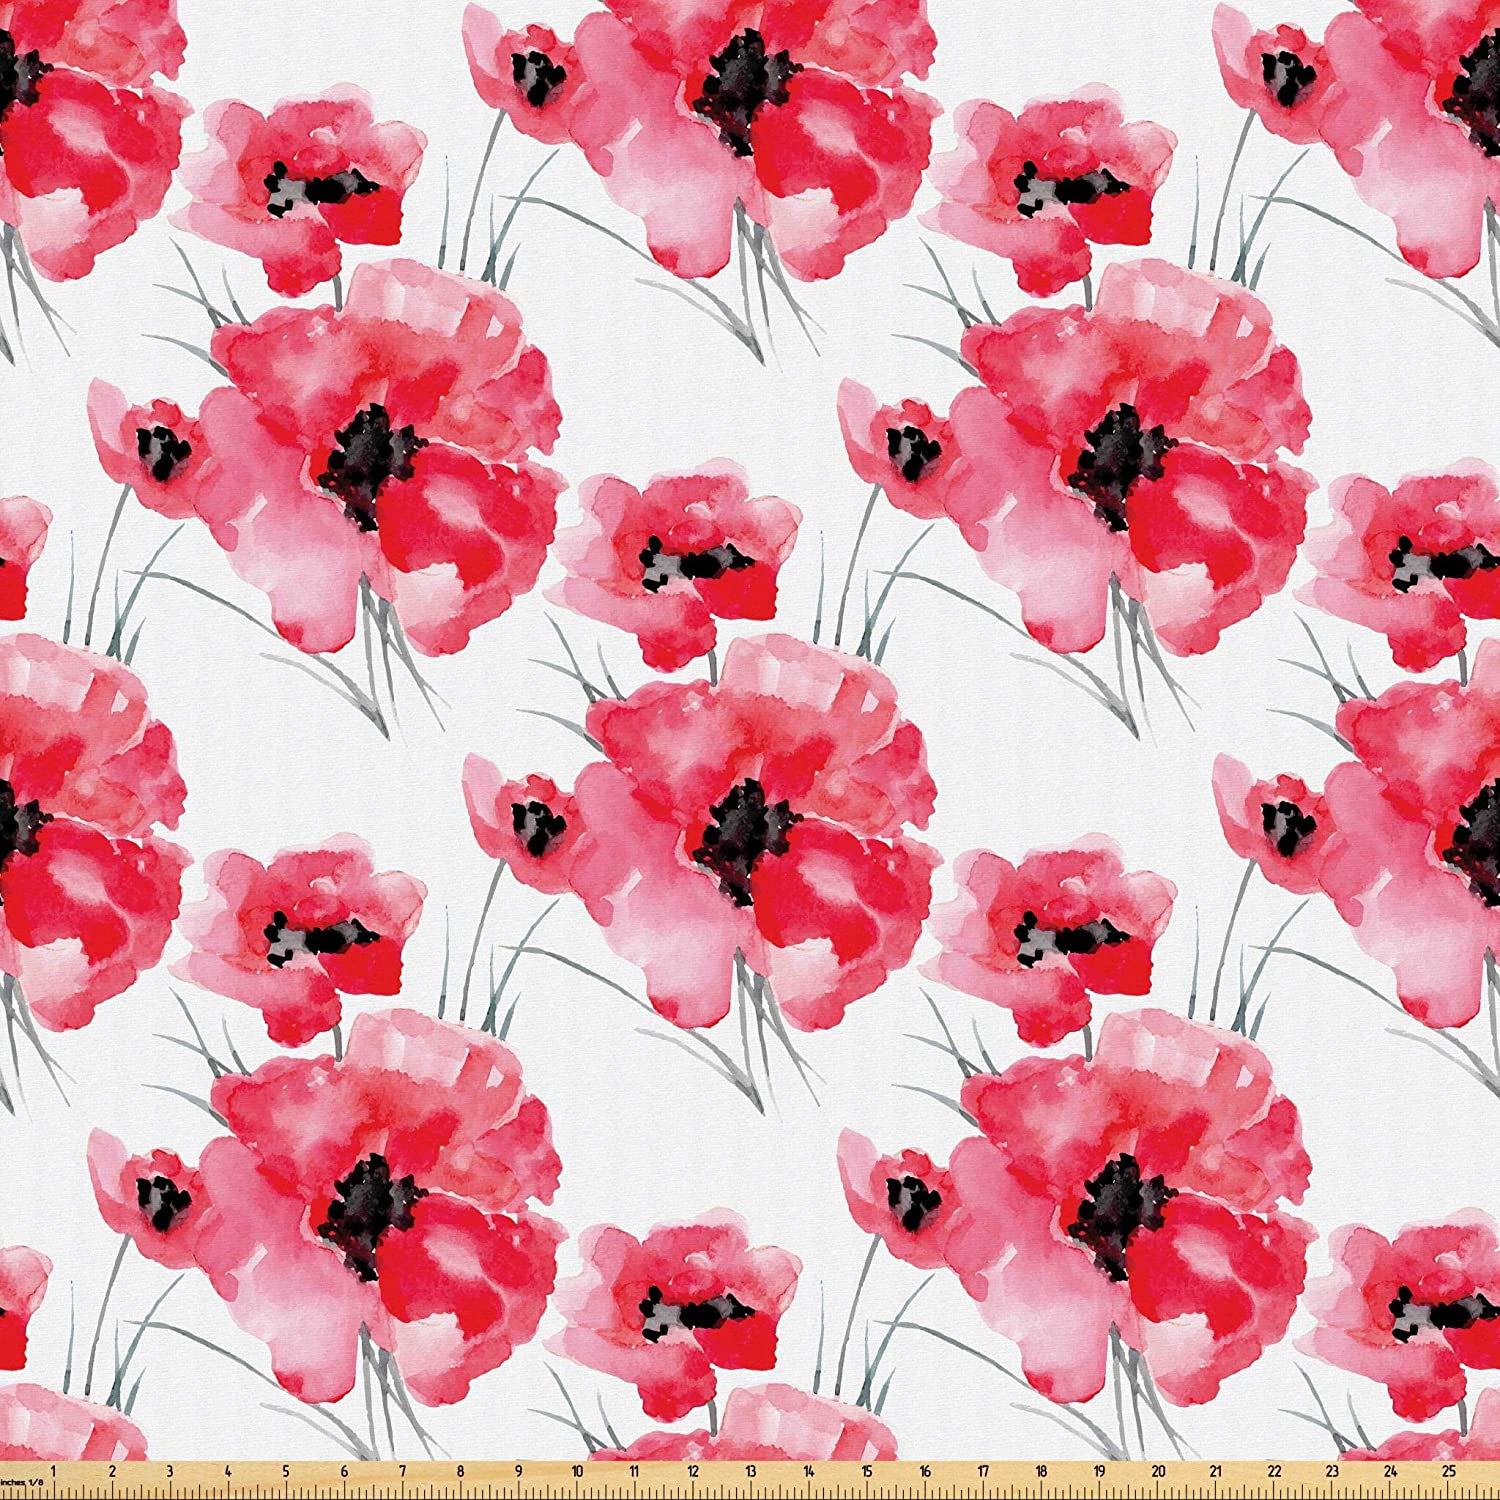 Lunarable Poppy Flower Fabric by The Yard, Watercolor Romantic with Brush Stroke Effect Botany Arrangement, Microfiber Fabric for Arts and Crafts Textiles & Decor, 2 Yards, Dark Coral Black